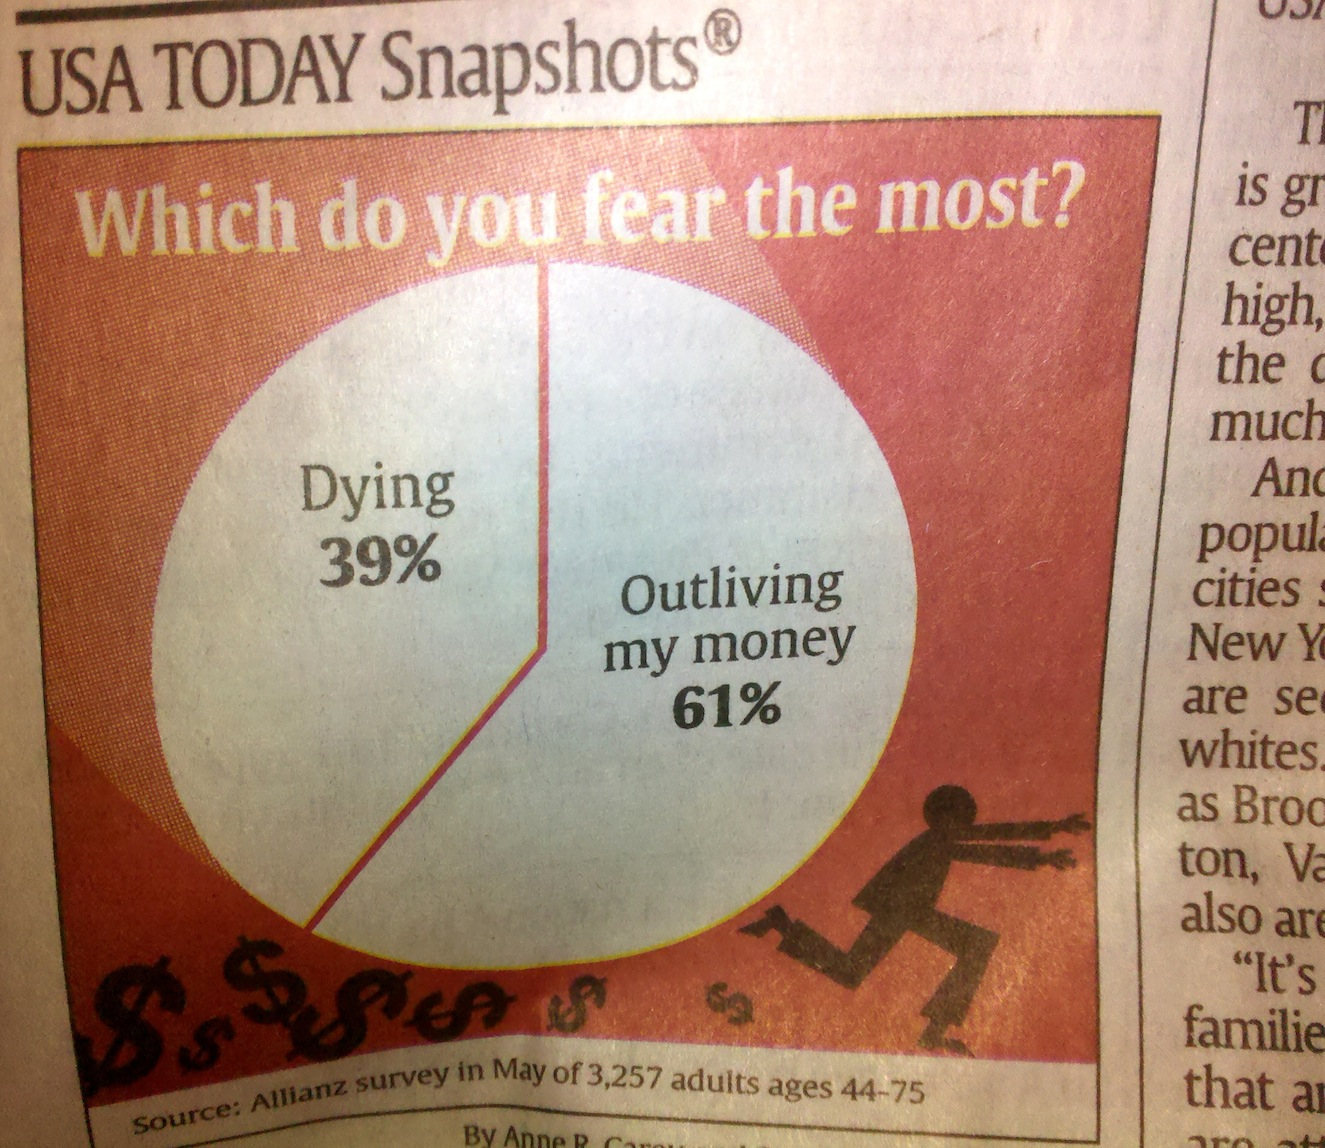 fear of outliving money